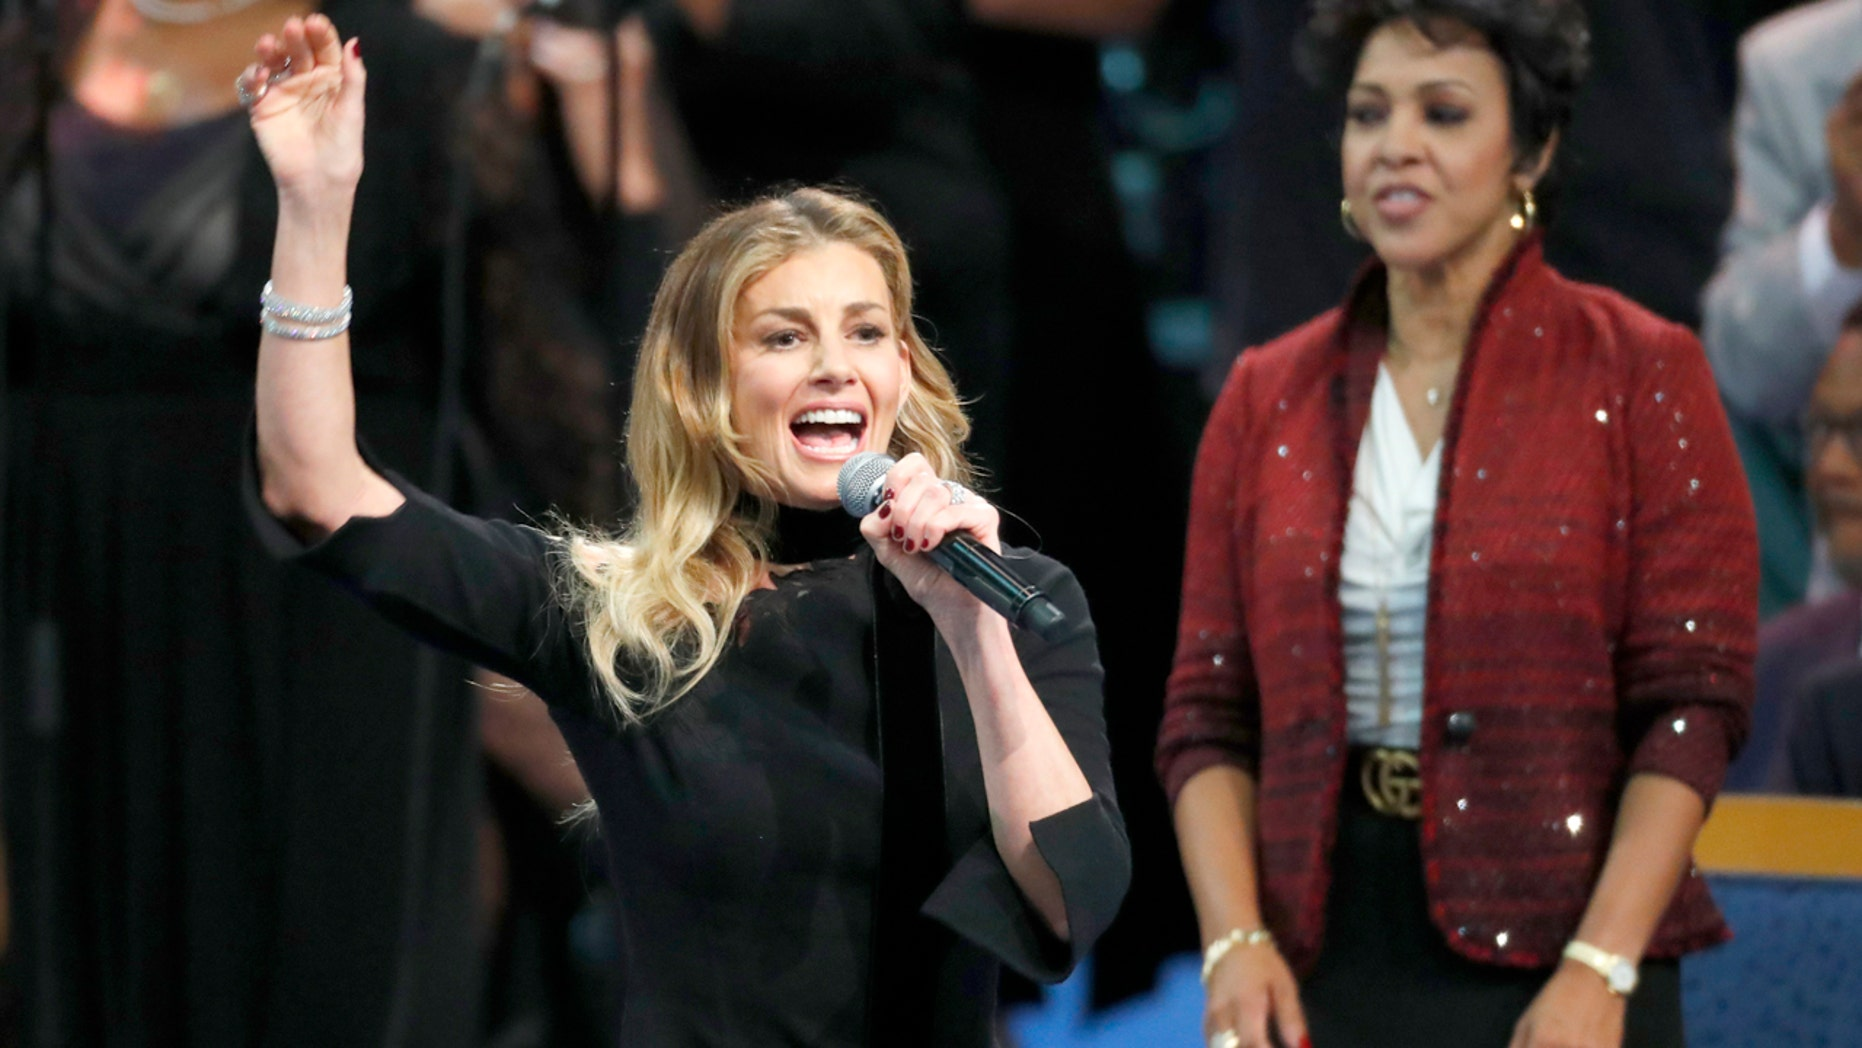 Faith Hill performs during the funeral service for Aretha Franklin at Greater Grace Temple, Friday, Aug. 31, 2018, in Detroit. Hill's husband, Tim McGraw, said on Tuesday that his father-in-law died last week.